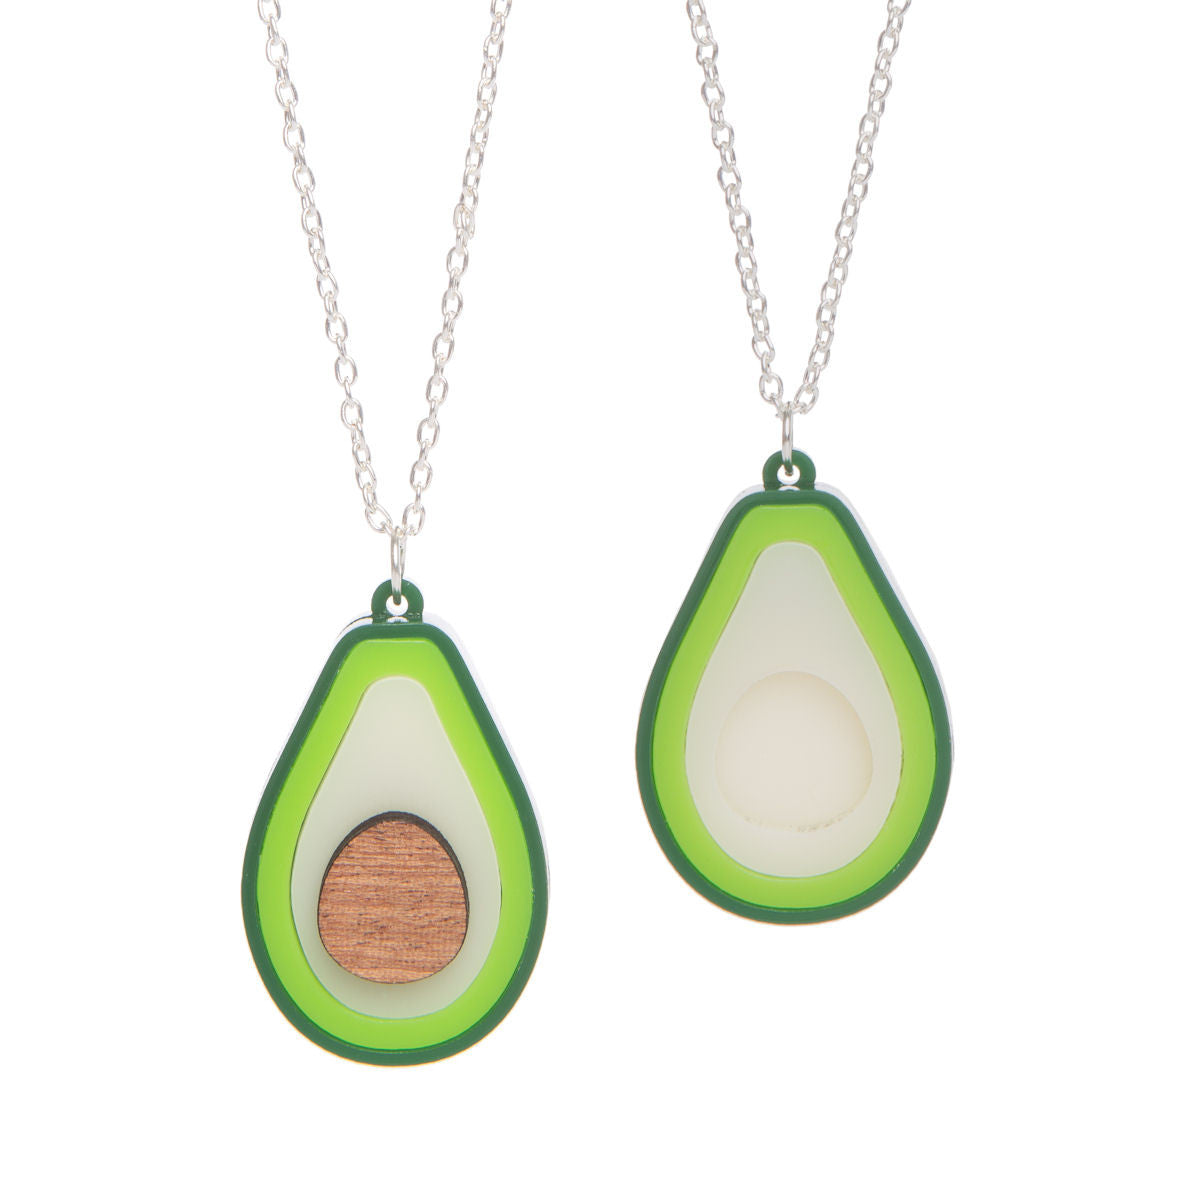 Sugar & Vice Avocado Necklace Set